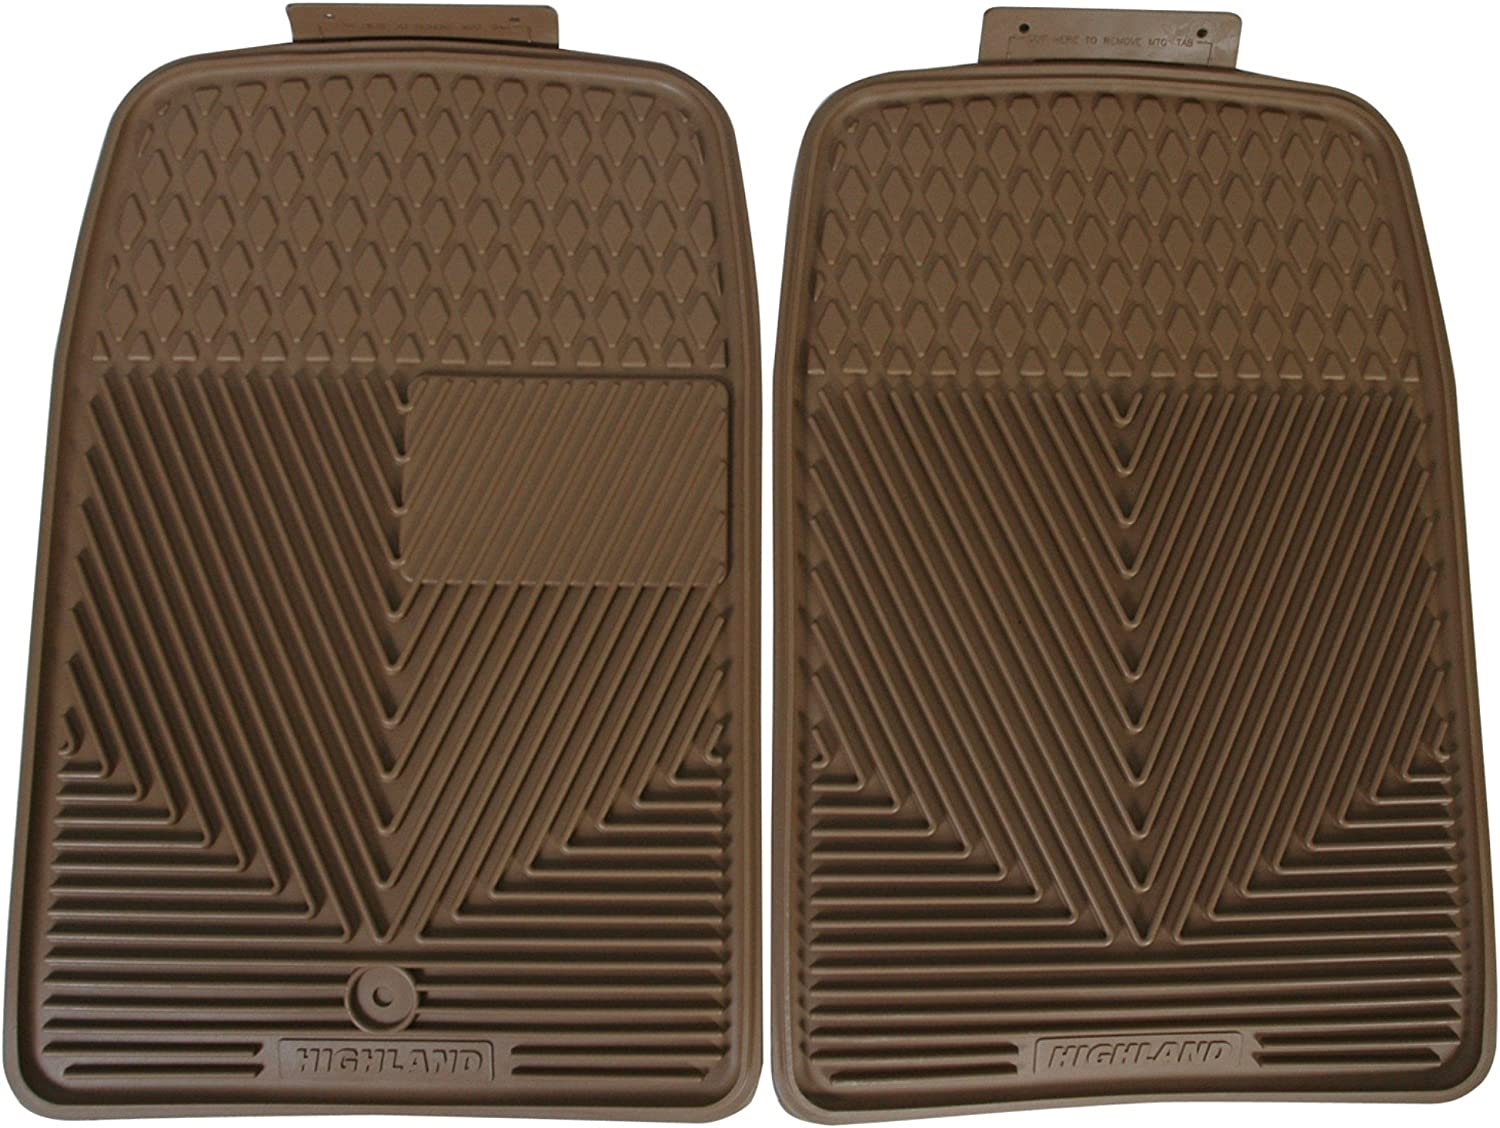 Directly managed store Highland 4402700 All-Weather Max 77% OFF Tan Mat Floor Seat Front